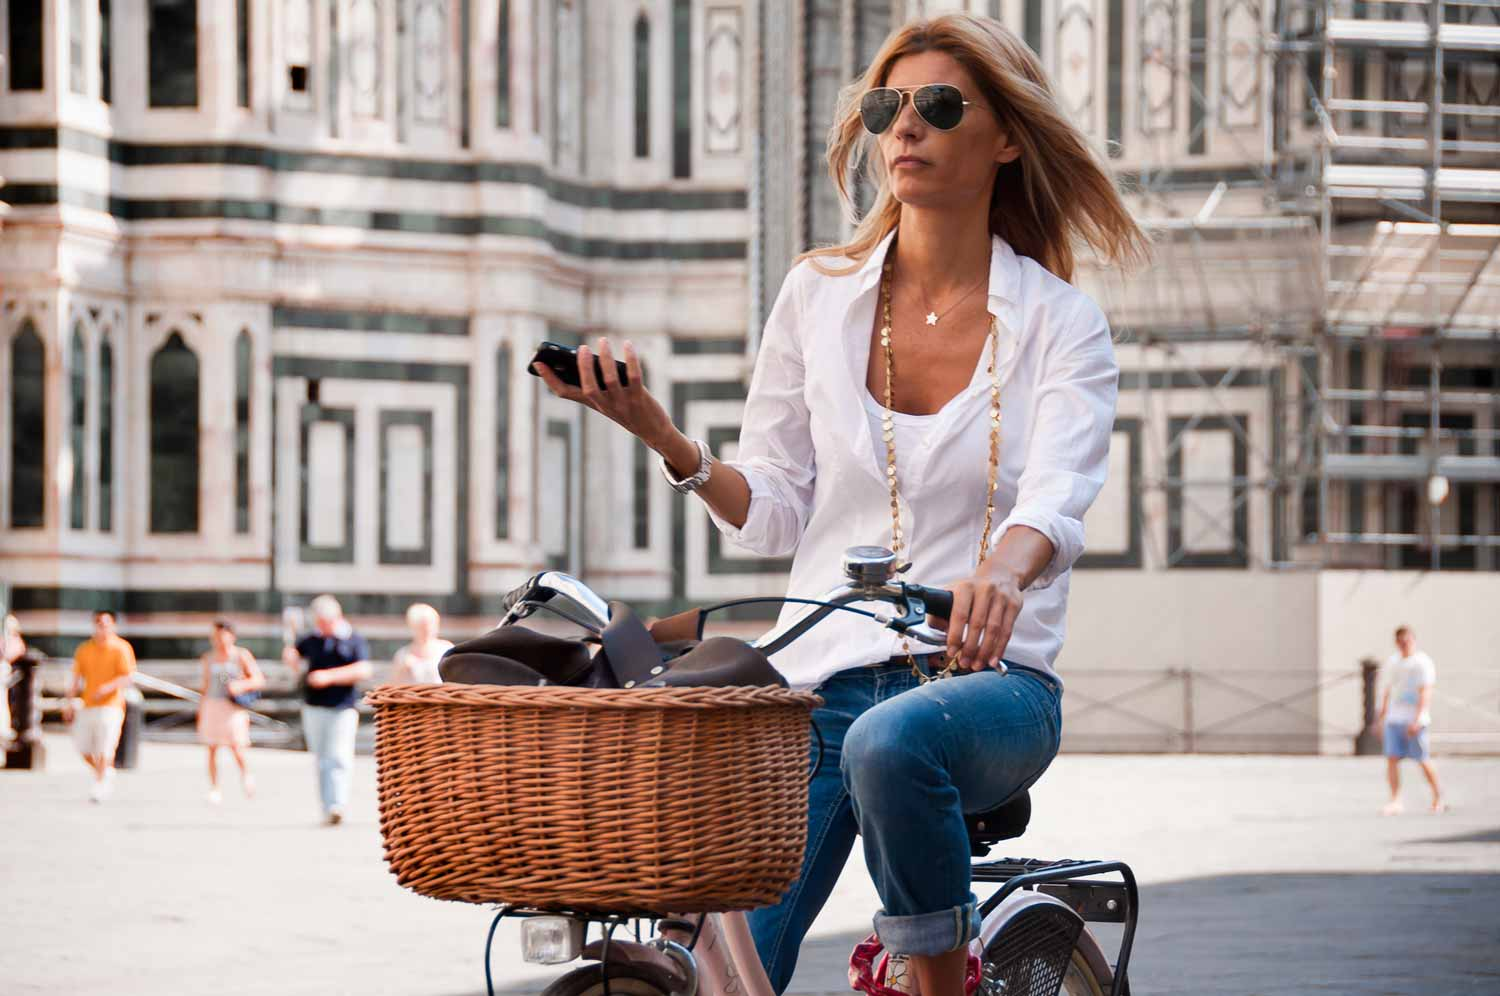 Cycling alongside the Florence duomo in Italian style.